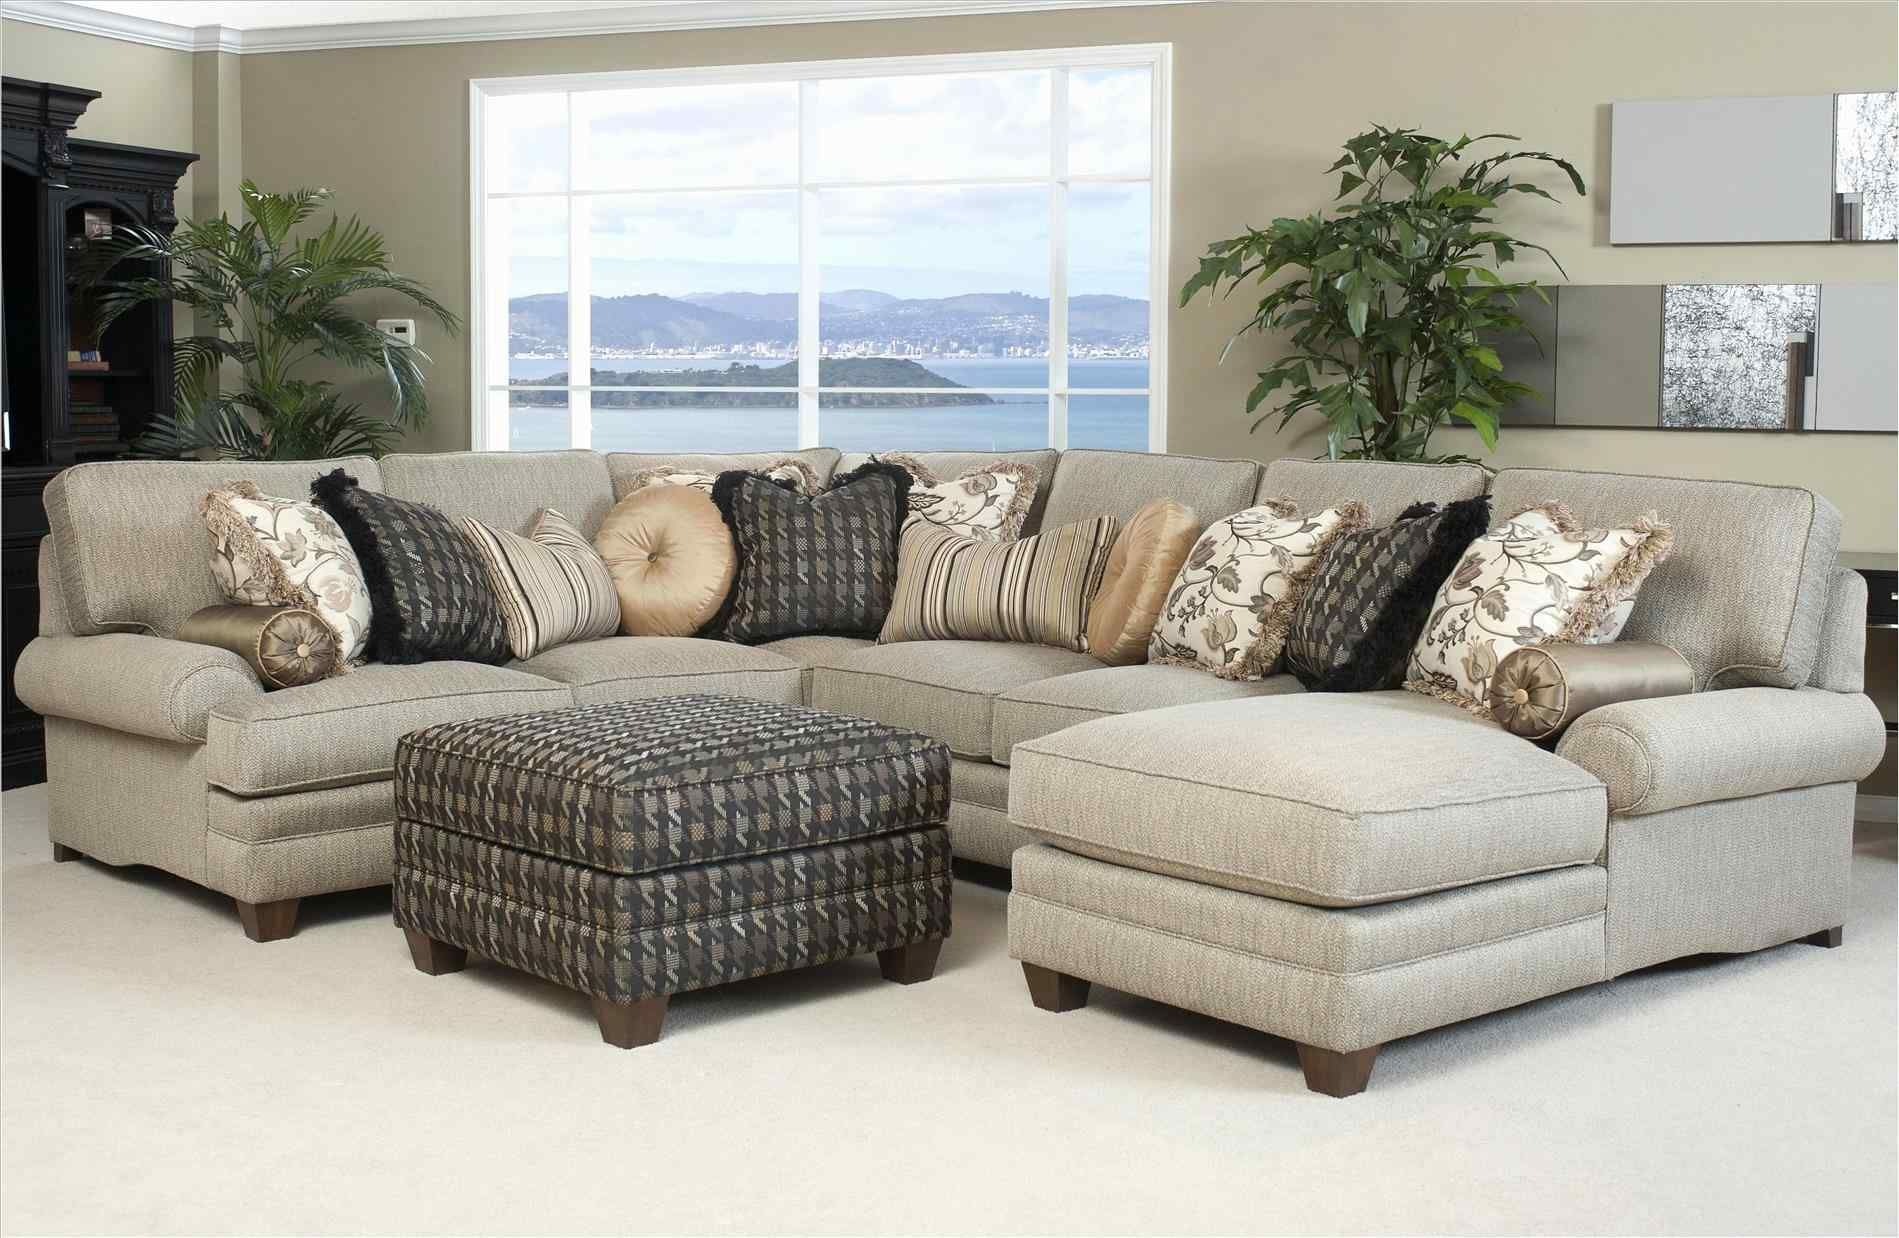 Of Marvelous Curved Rhclicsbeautycom Best Affordable Couches Sectional Sofas Most Comfortable Sofa